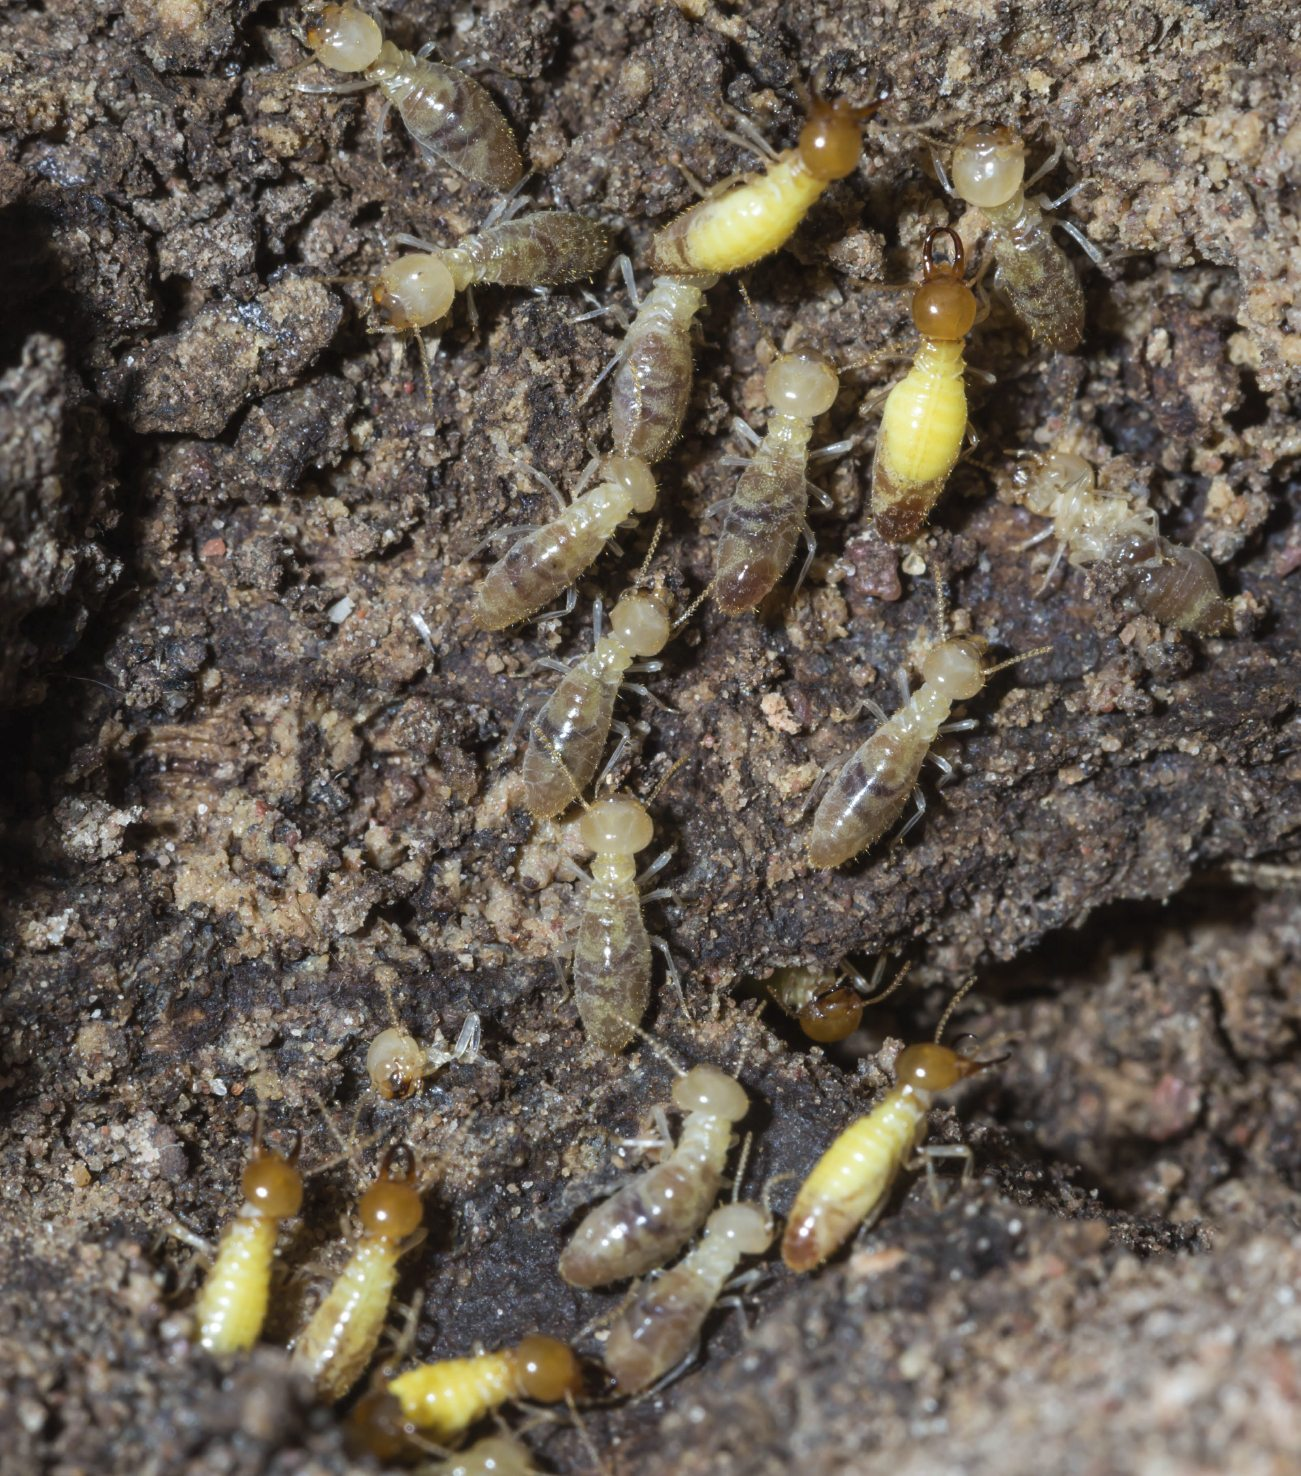 What To Do About Termites In Mulch Piles